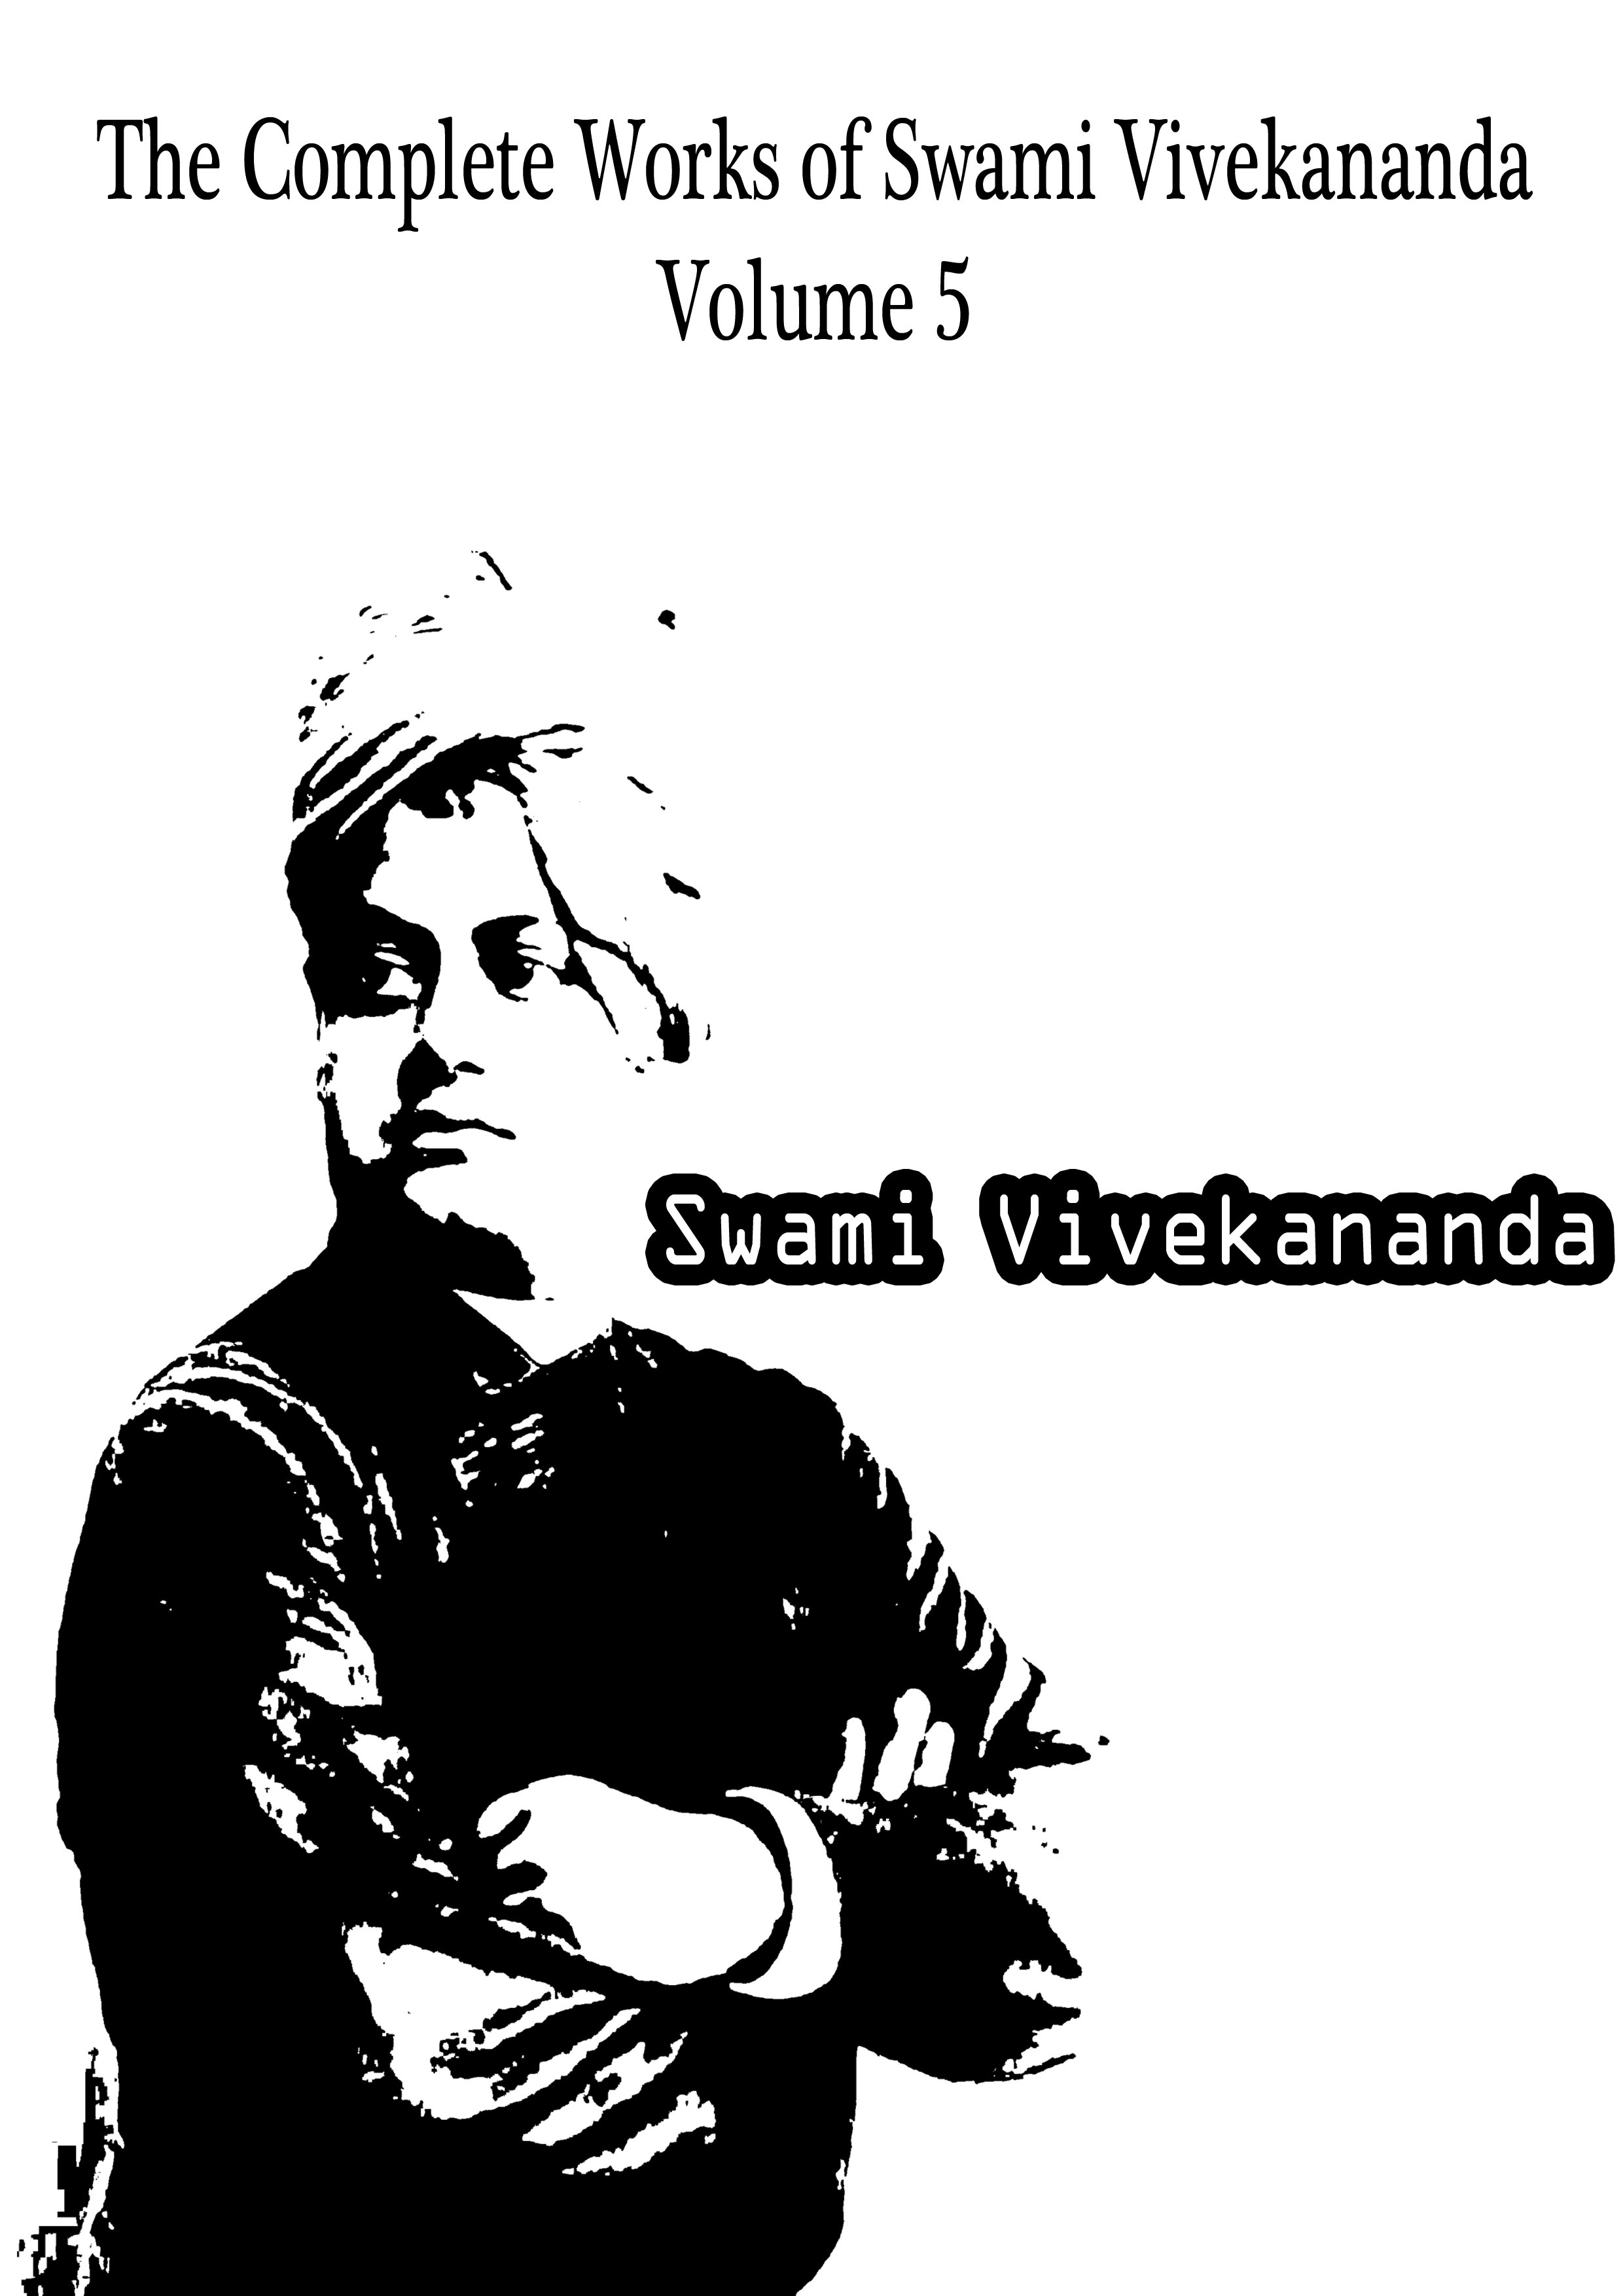 The Complete Works of Swami Vivekananda Volume 5